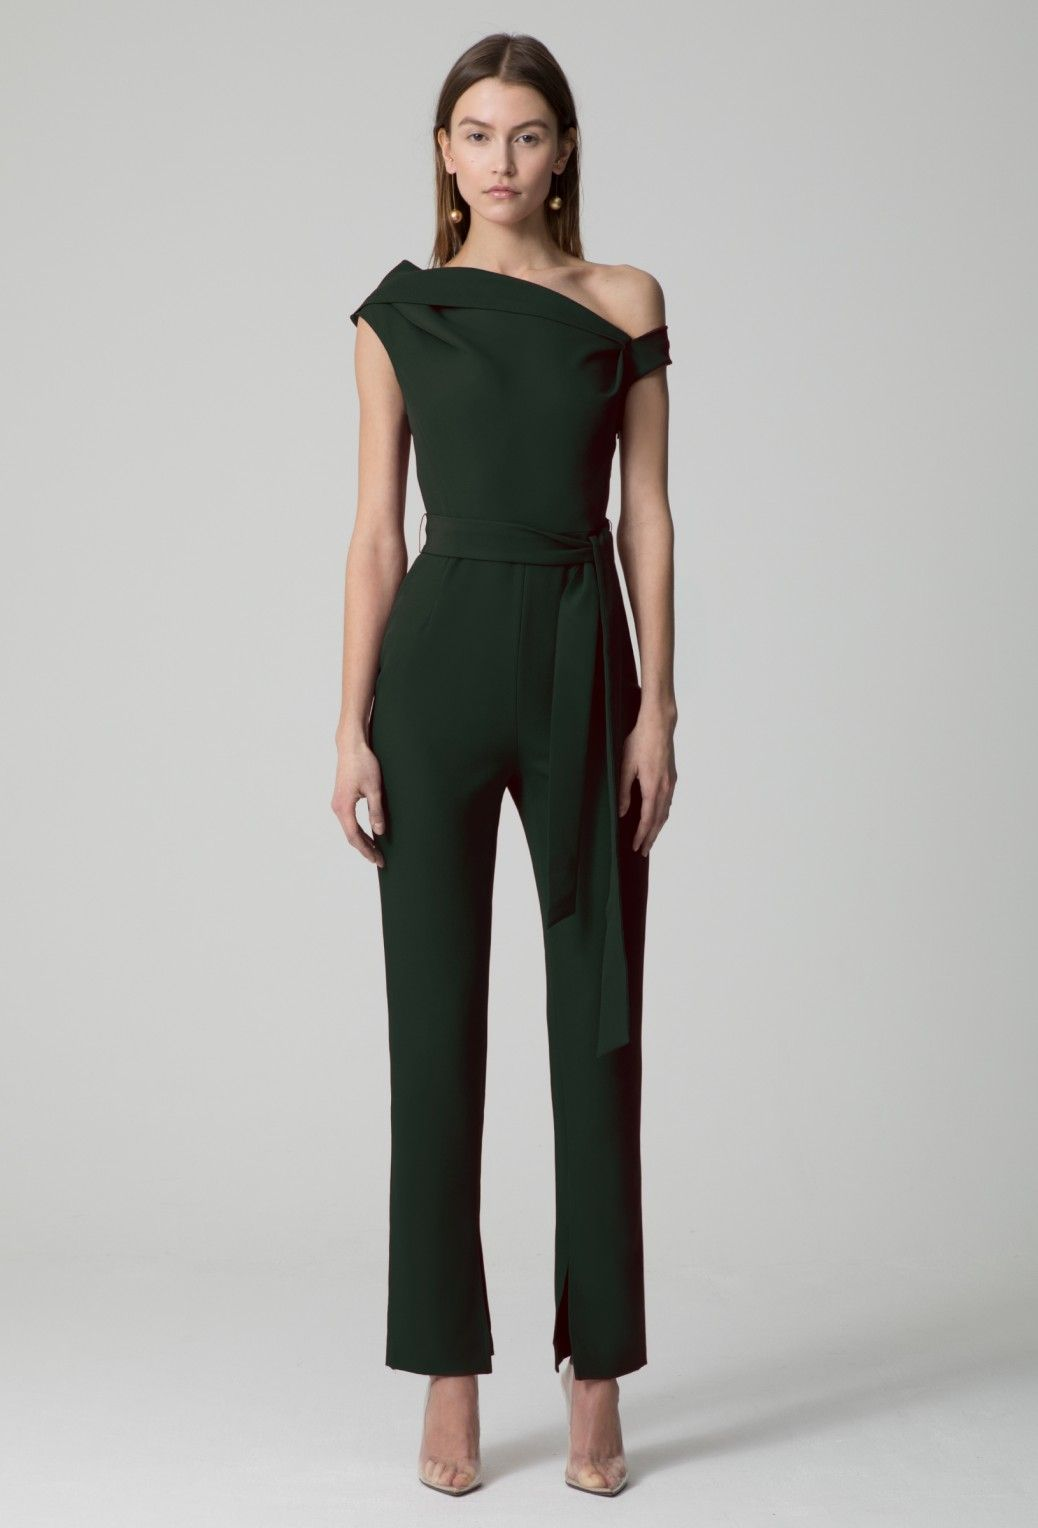 268a77d6db44 Image 3 of AQ AQ Didion Structured Jumpsuit · Khaki